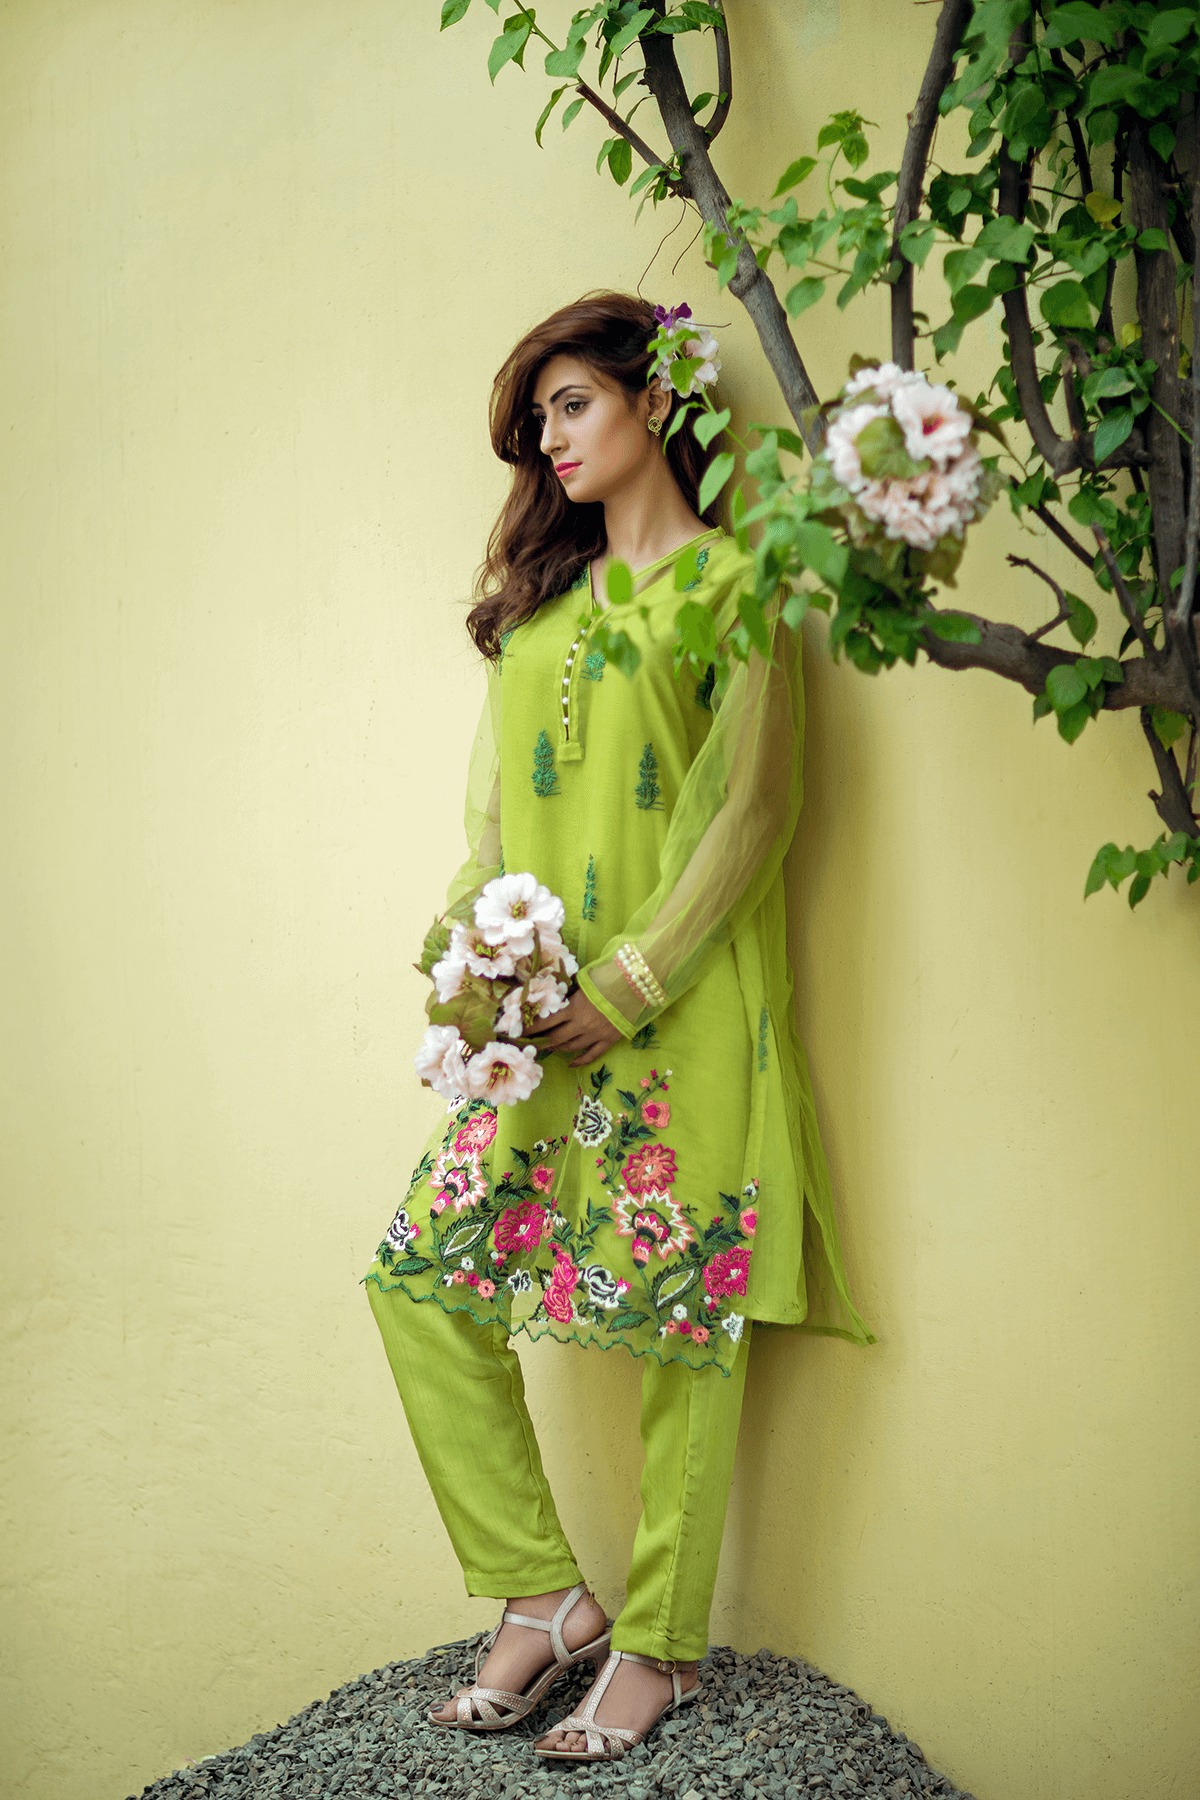 Cute Lahori Ink Semi Formal Eid Dresses Designs Collection 2017-18 (9)